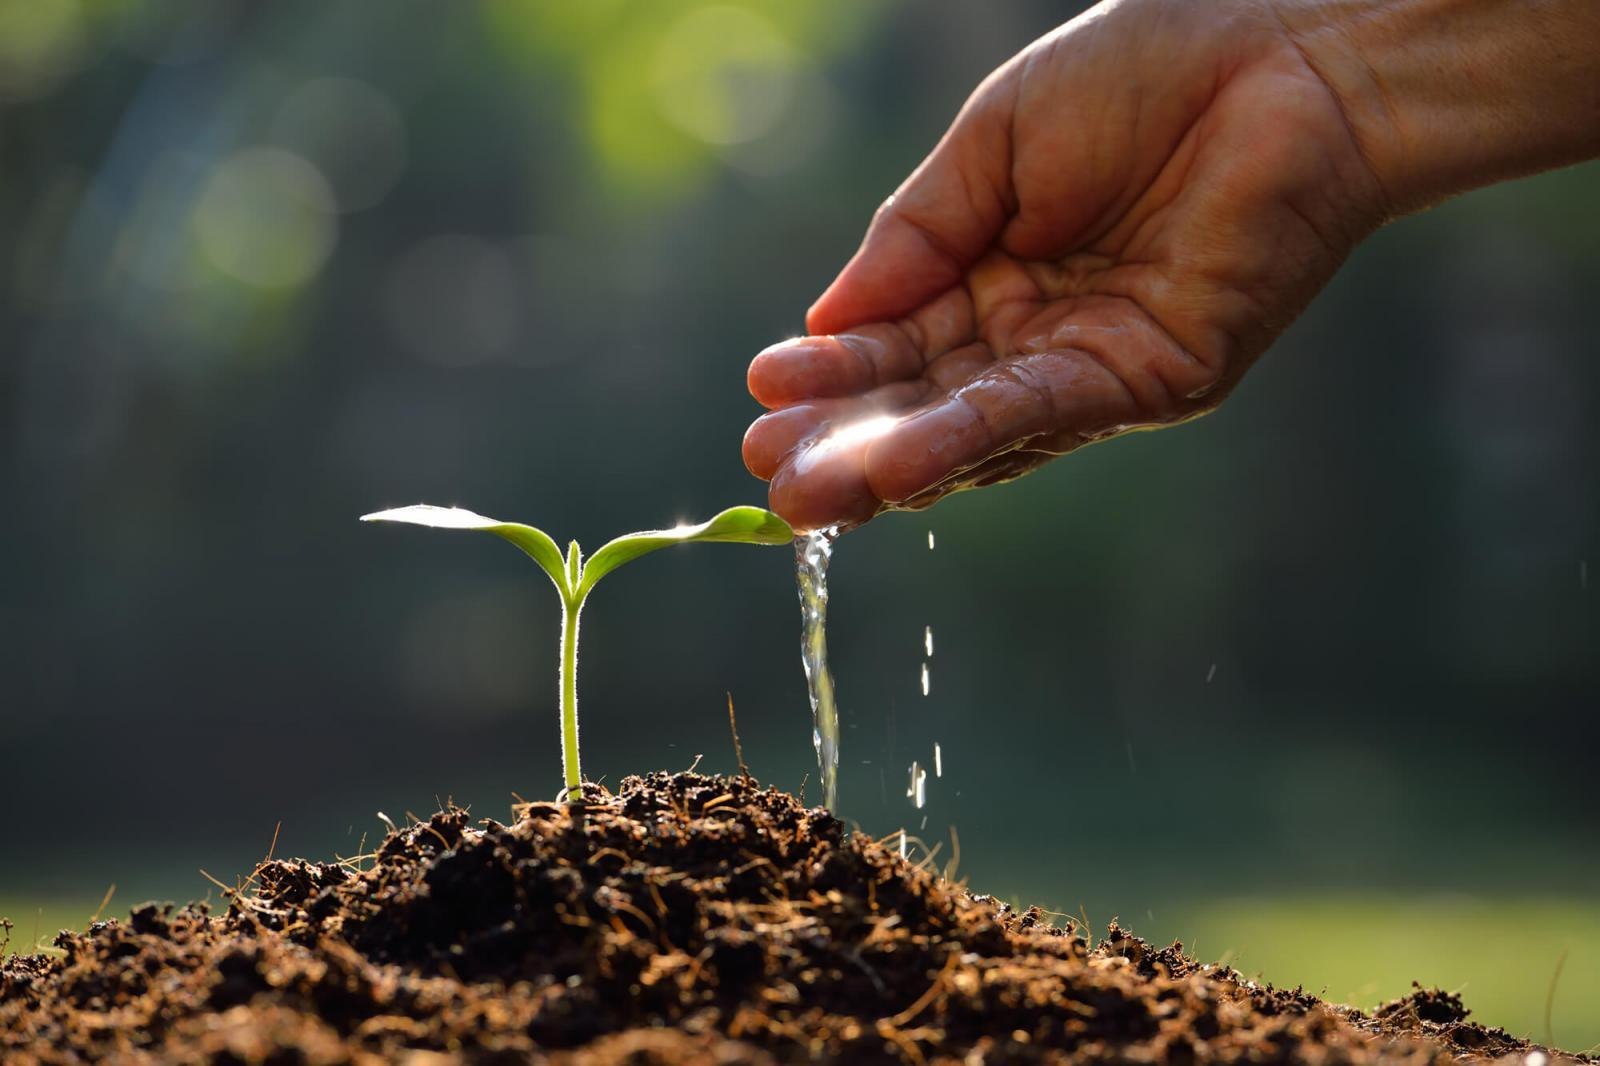 The therapeutic value of horticulture